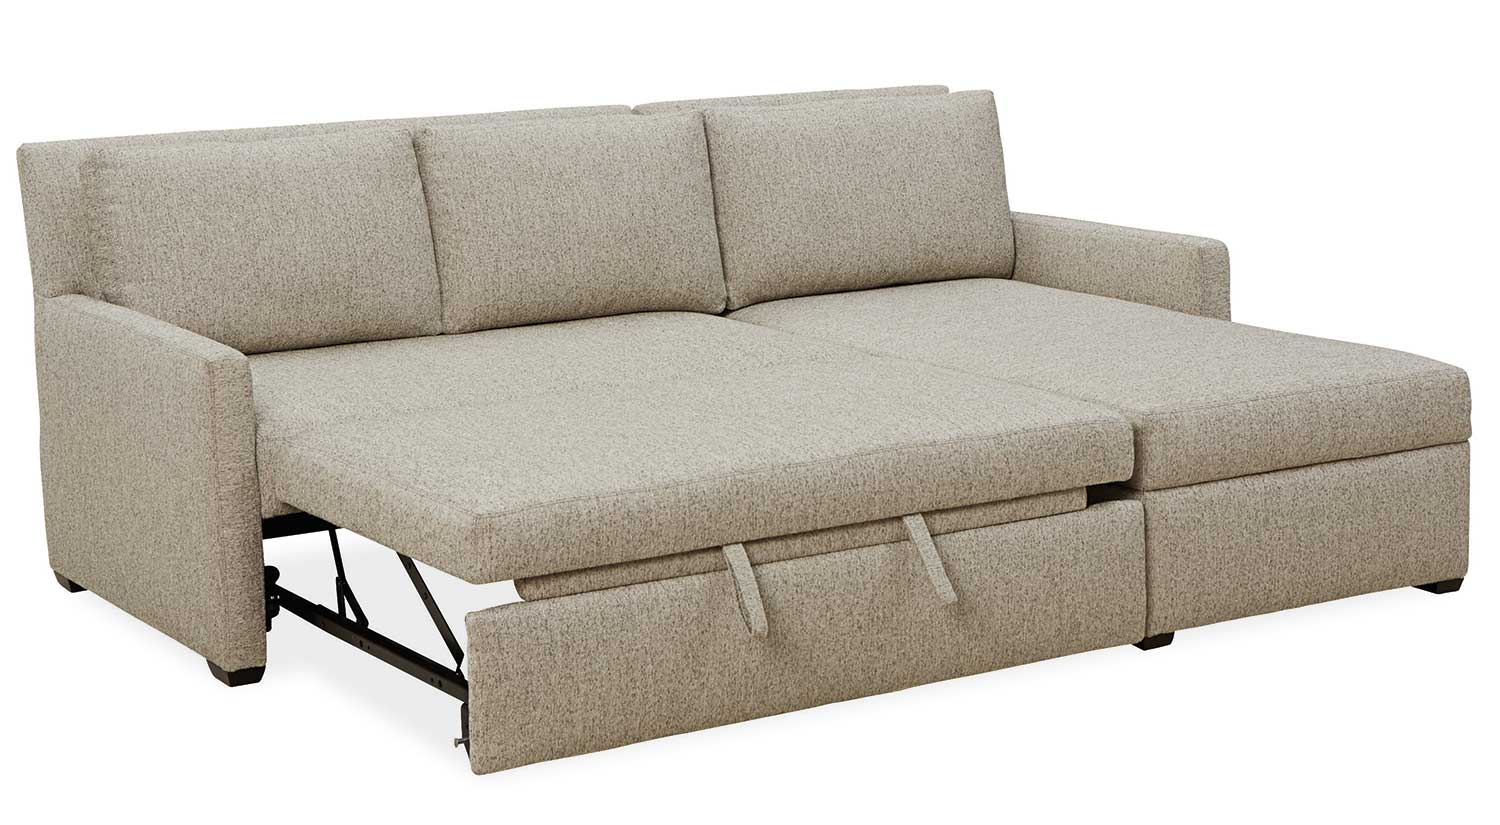 Circle furniture sleeper sofa sectional sleepers for Sectional sleeper sofa austin